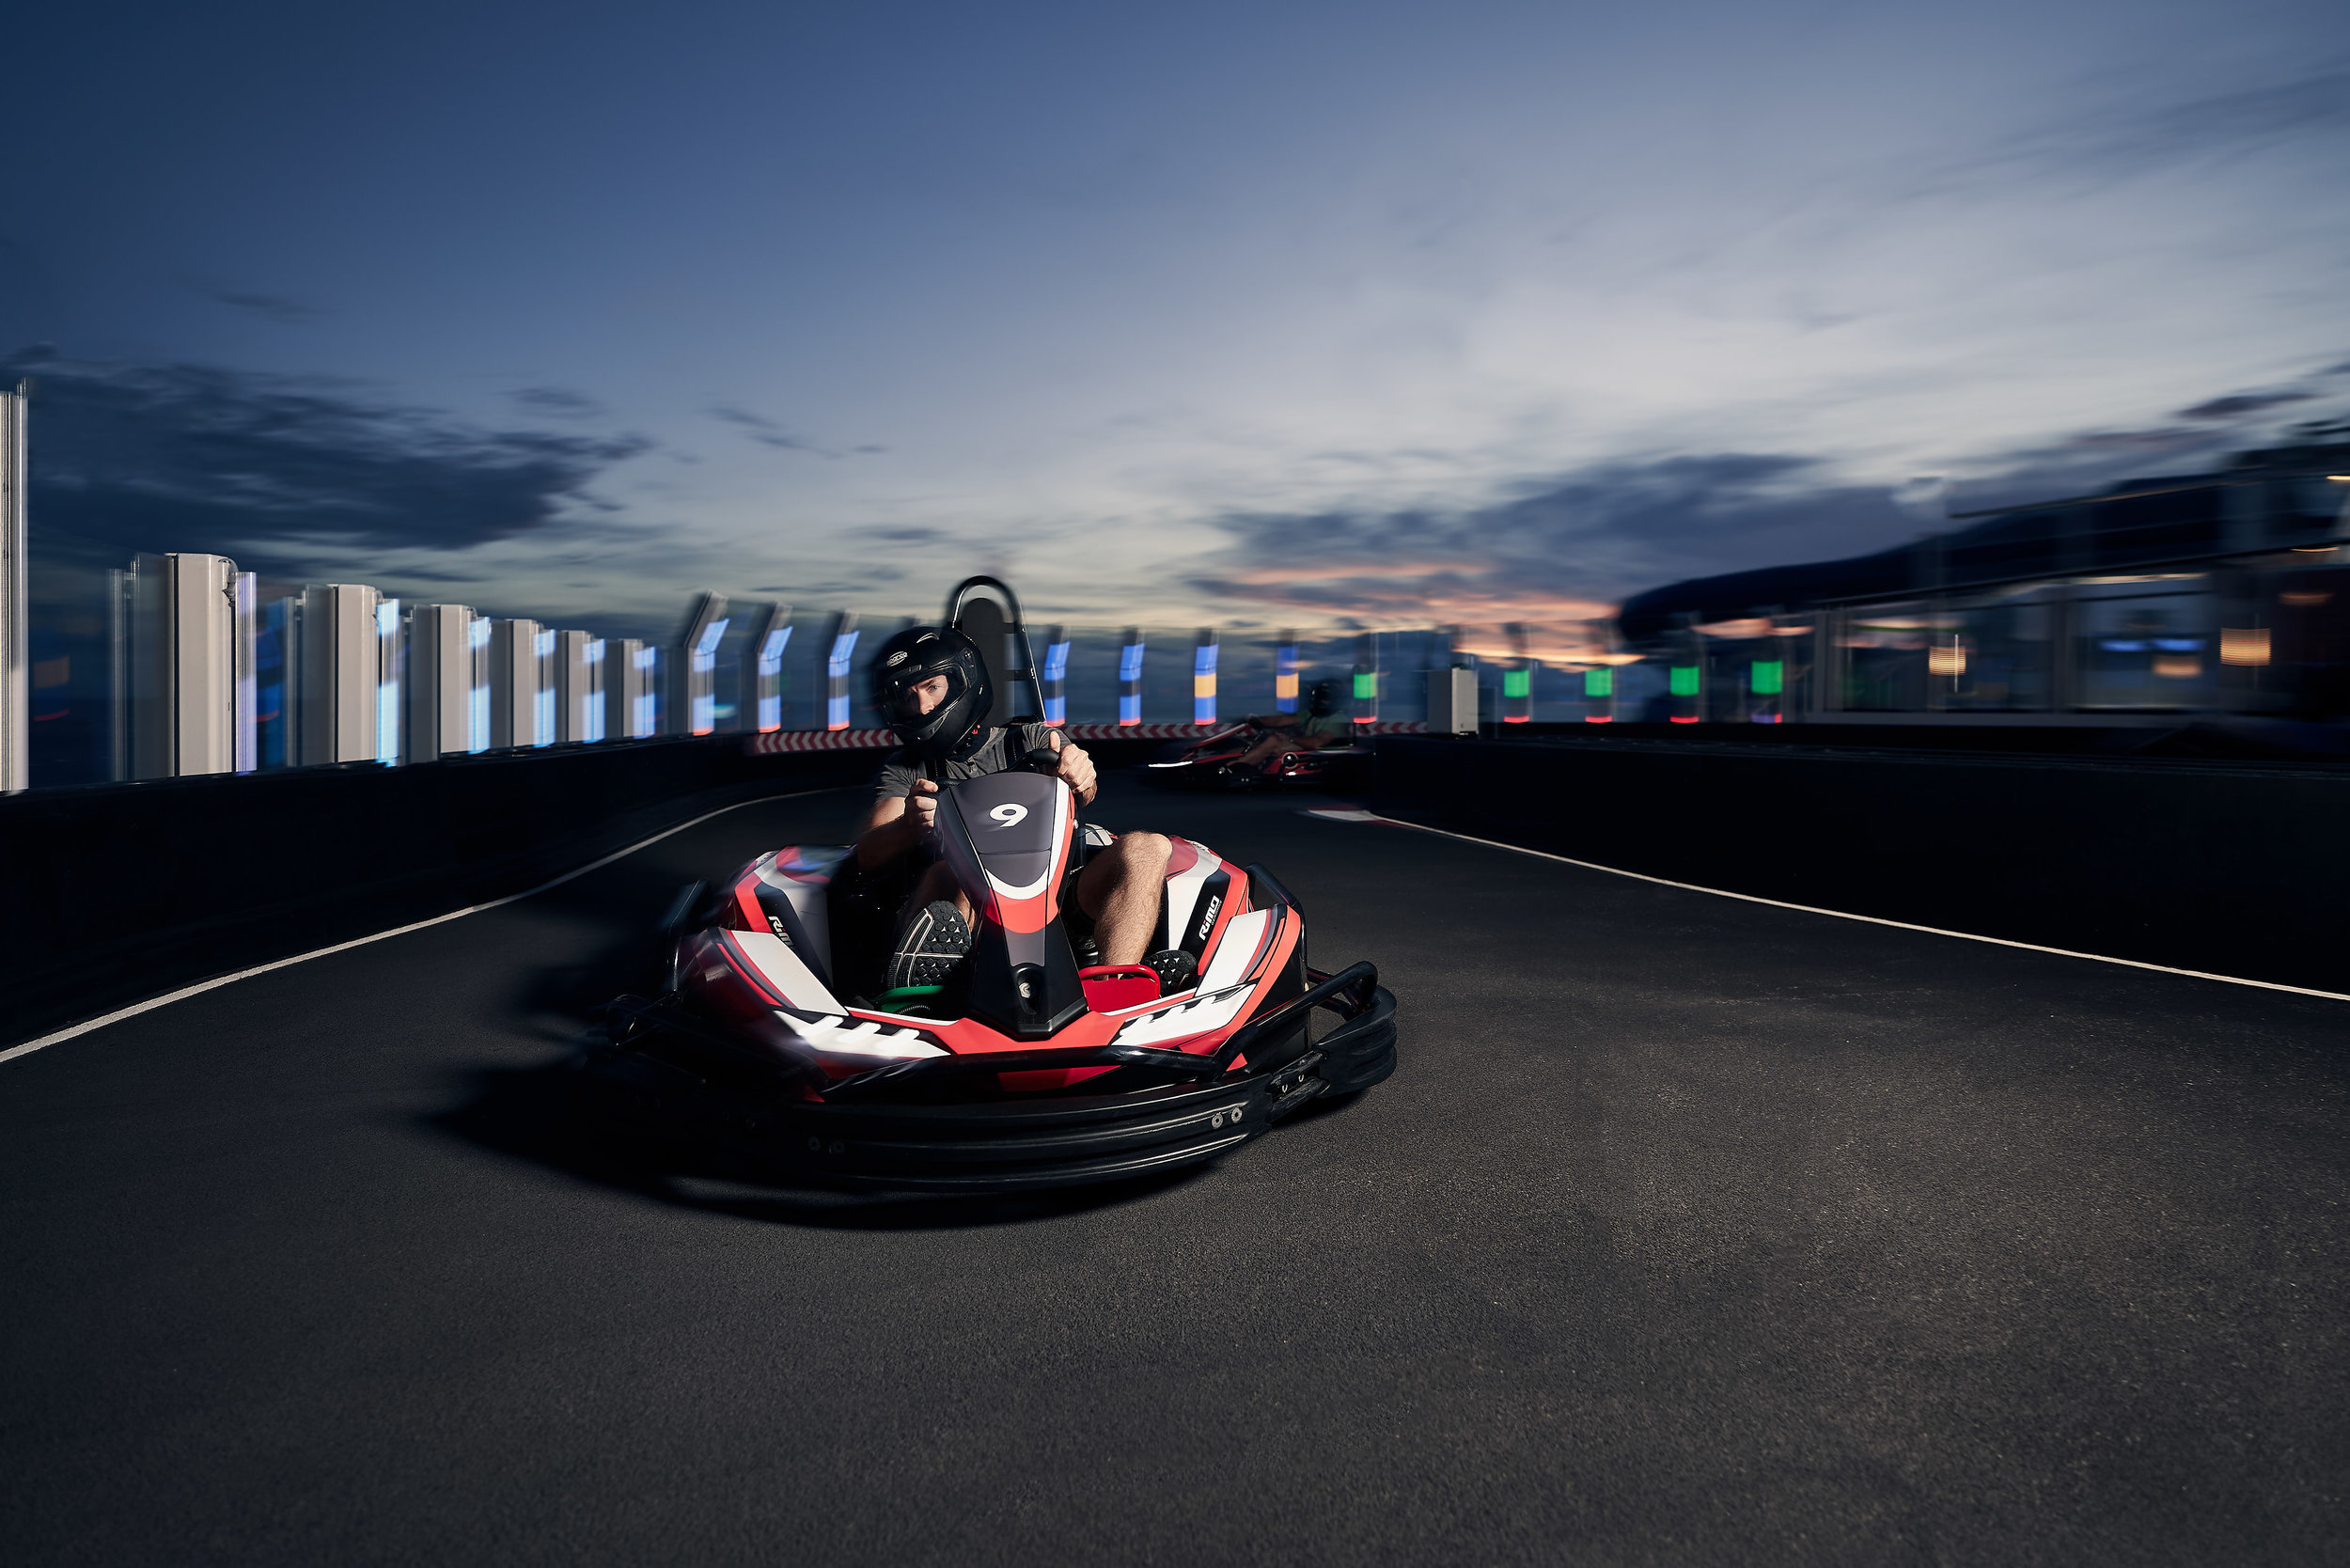 The Go Kart Track on the Norwegian Bliss. Probably the most fun photo I took as my client was driving and I was snapping away. My assistant was on foot running around with the strobe. Made for a wild experience! I had my shutter speed set a little lower here to create bit of motion blur while the strobe made sure my subject stayed sharp. I have the say that the focus tracking on the Sony A7riii did a hell of a job with all the movement! Fun fact, the guy driving the kart in this photo is Joe Simon, the Director of Photography for the last season of The Wonder List!